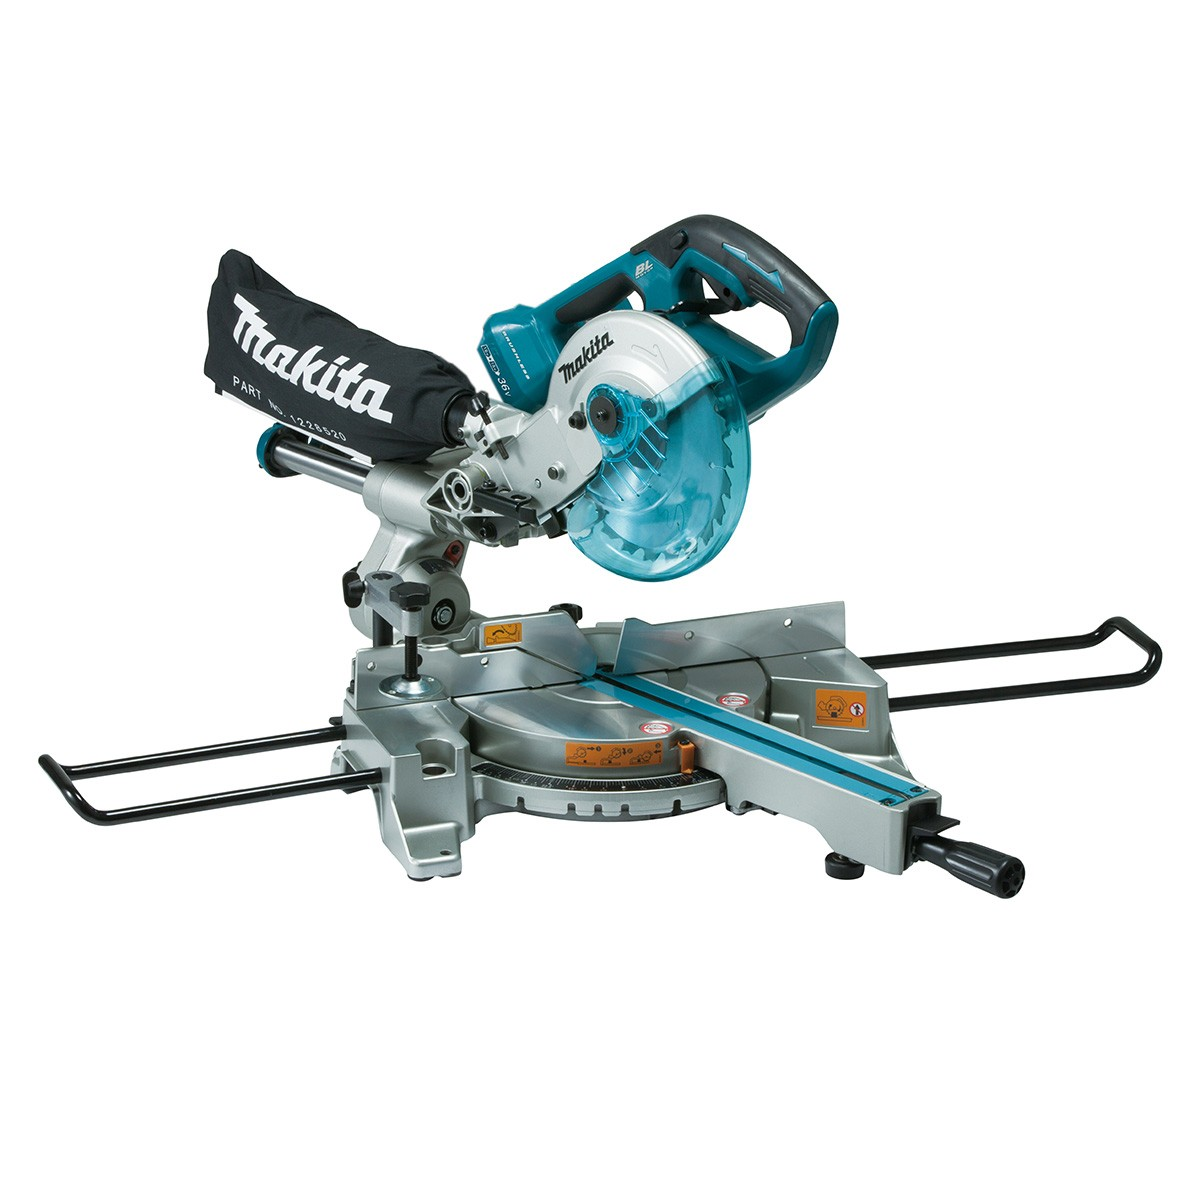 Makita DLS714Z Twin 18v Cordless Brushless Slide Compound 190mm Mitre Saw Body Only